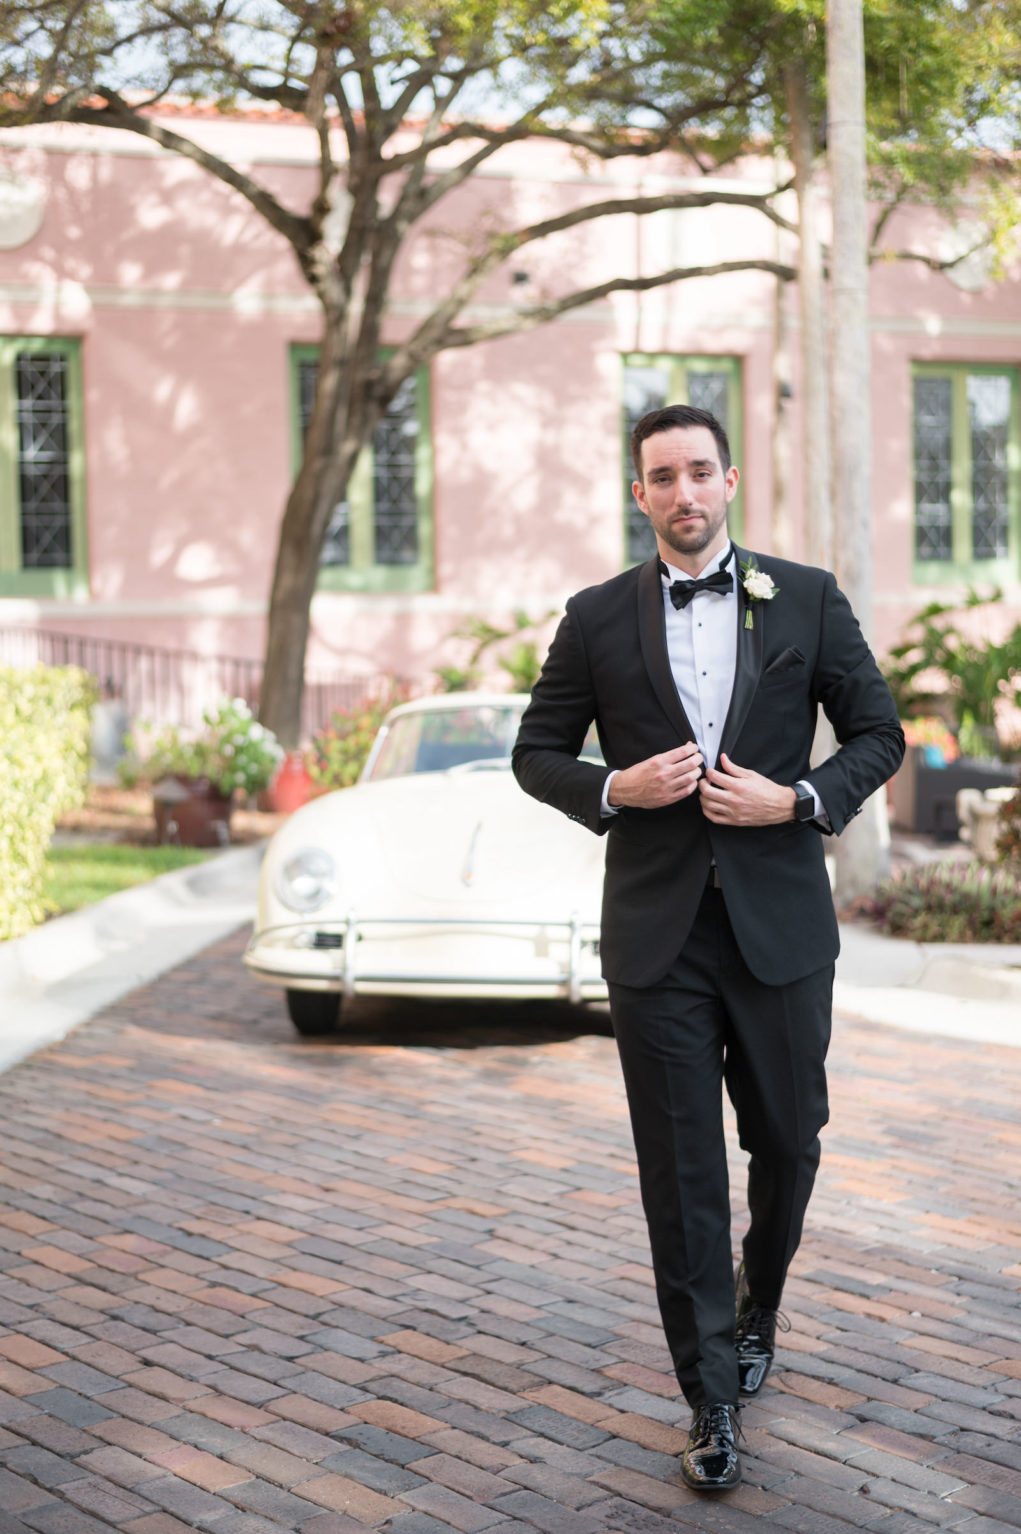 Elegant Classic Groom in Black Tuxedo and Bow Tie | Tampa Bay Wedding Photographer Carrie Wildes Photography